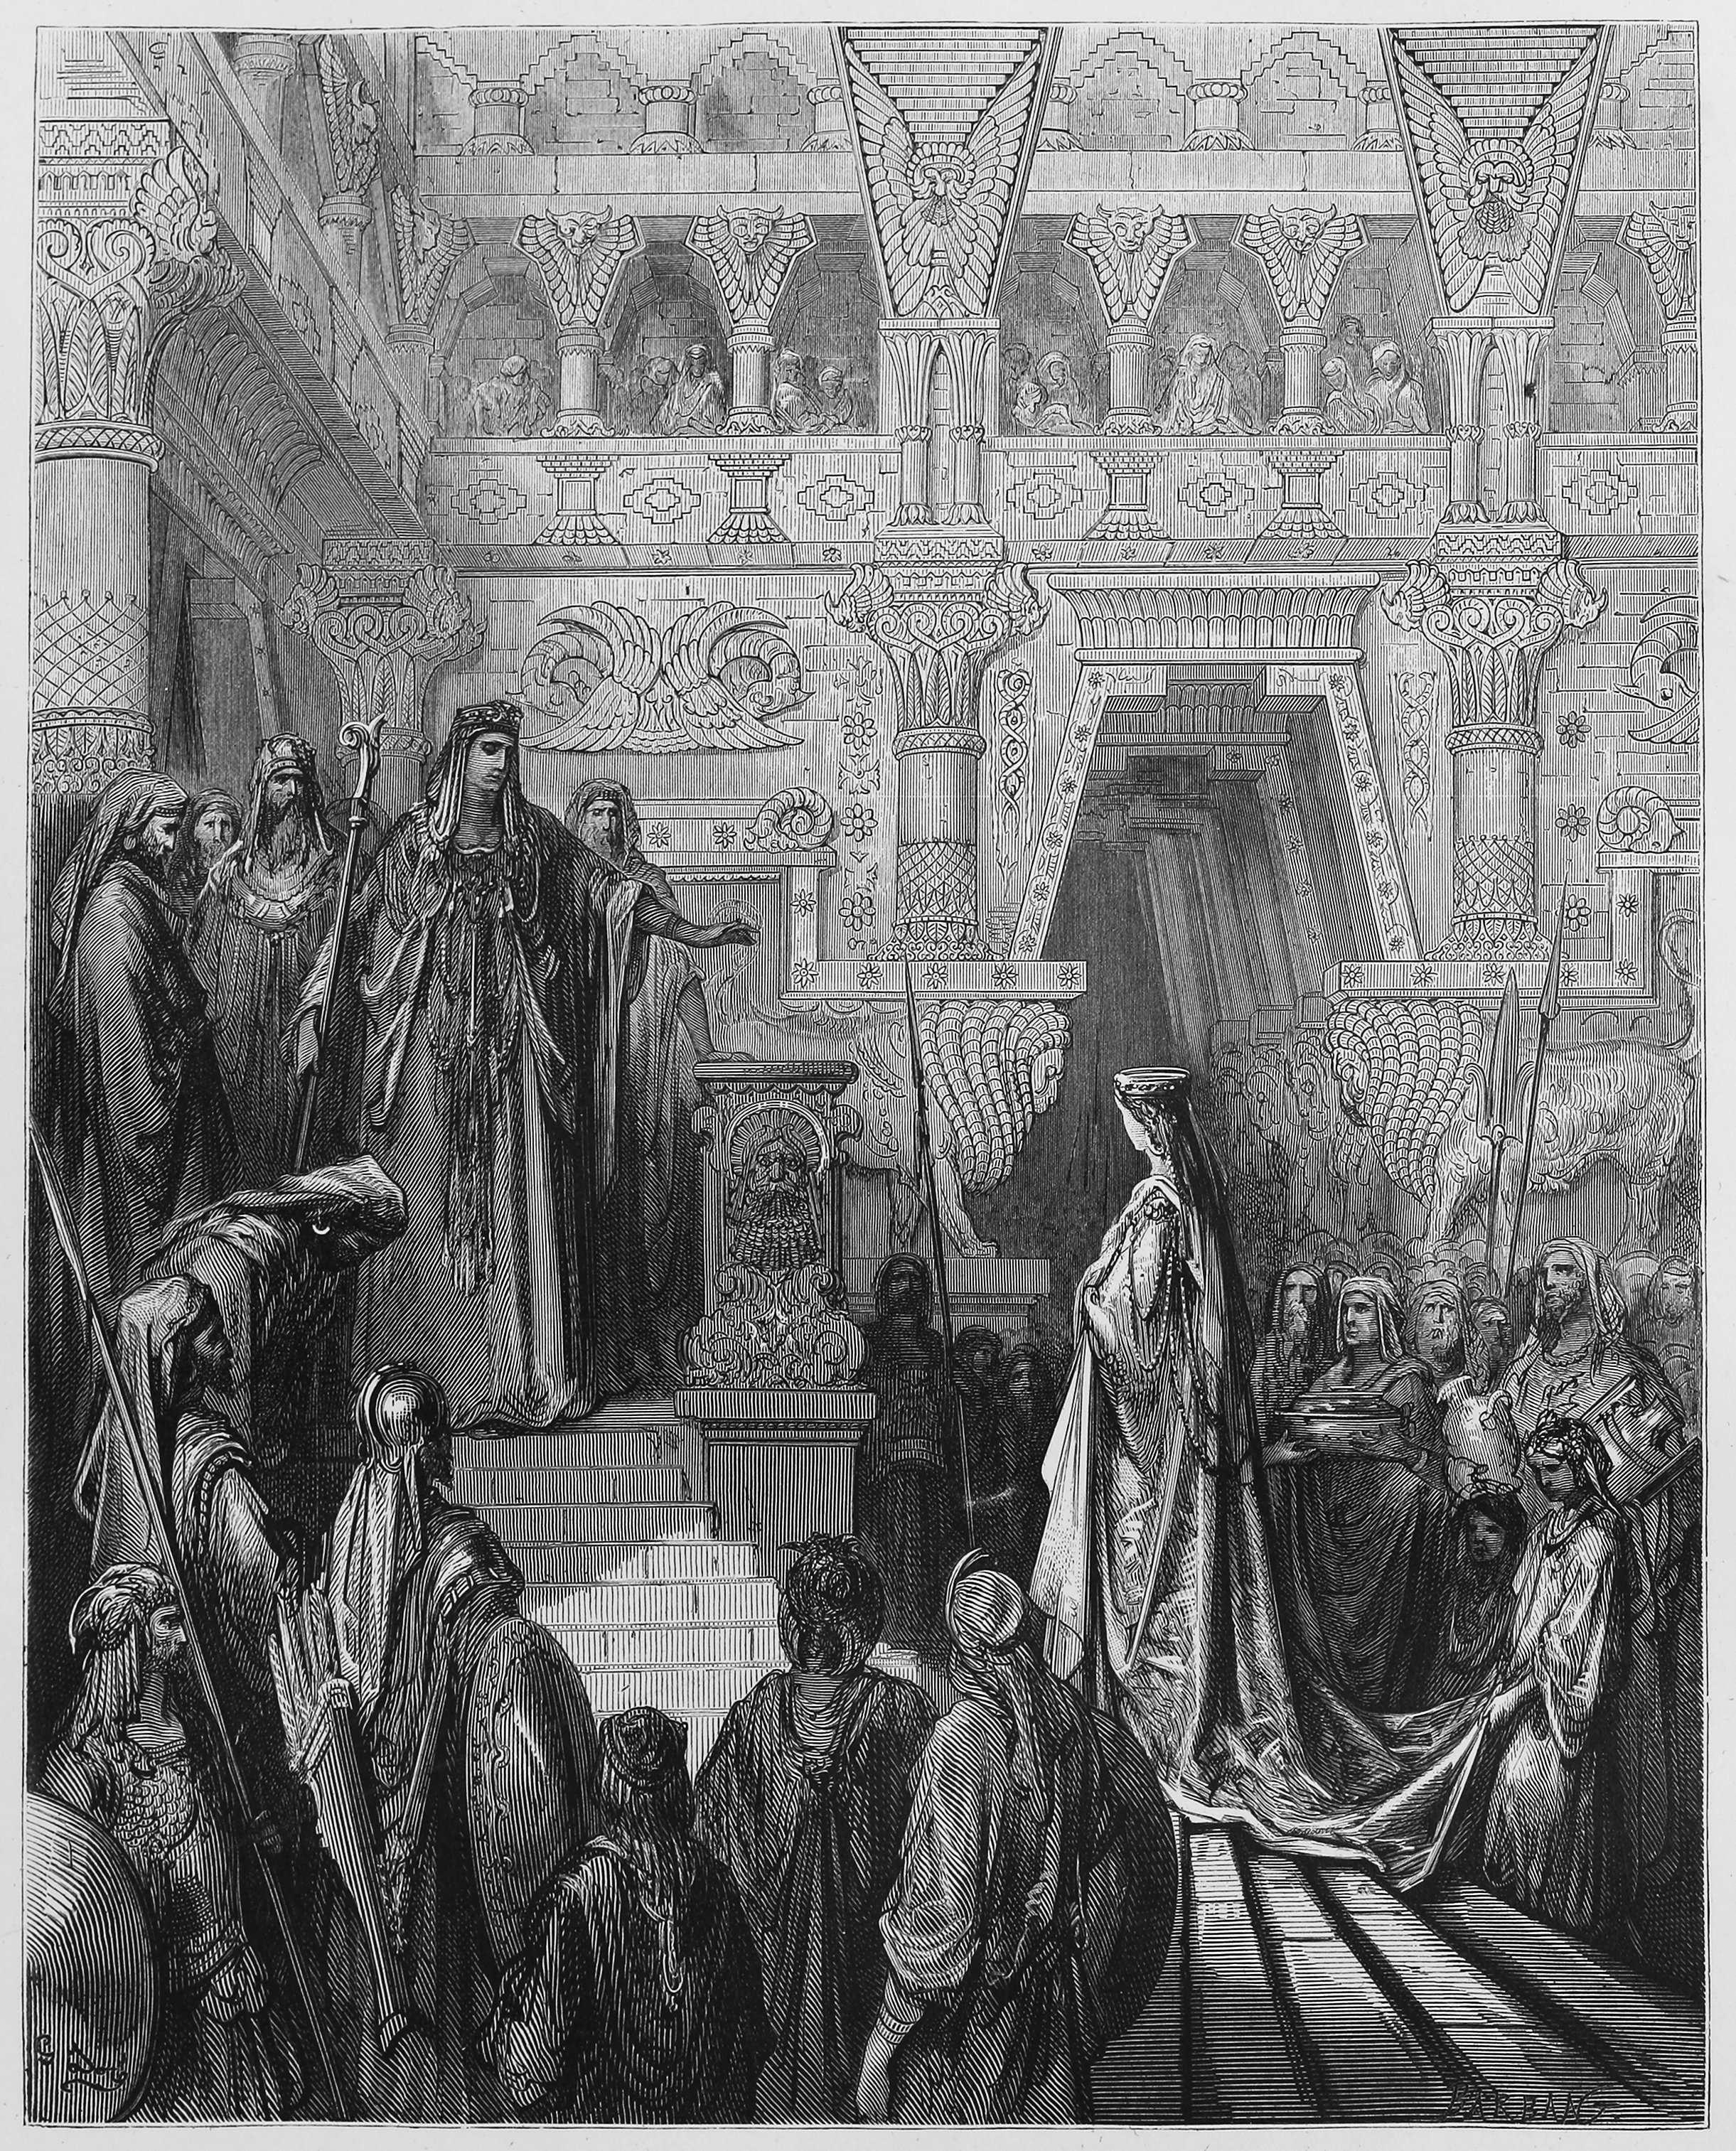 King Solomon received in the palace. Picture from The Holy Scriptures, Old and New Testaments books collection published in 1885, Stuttgart-Germany. |Photo: Shutterstock.